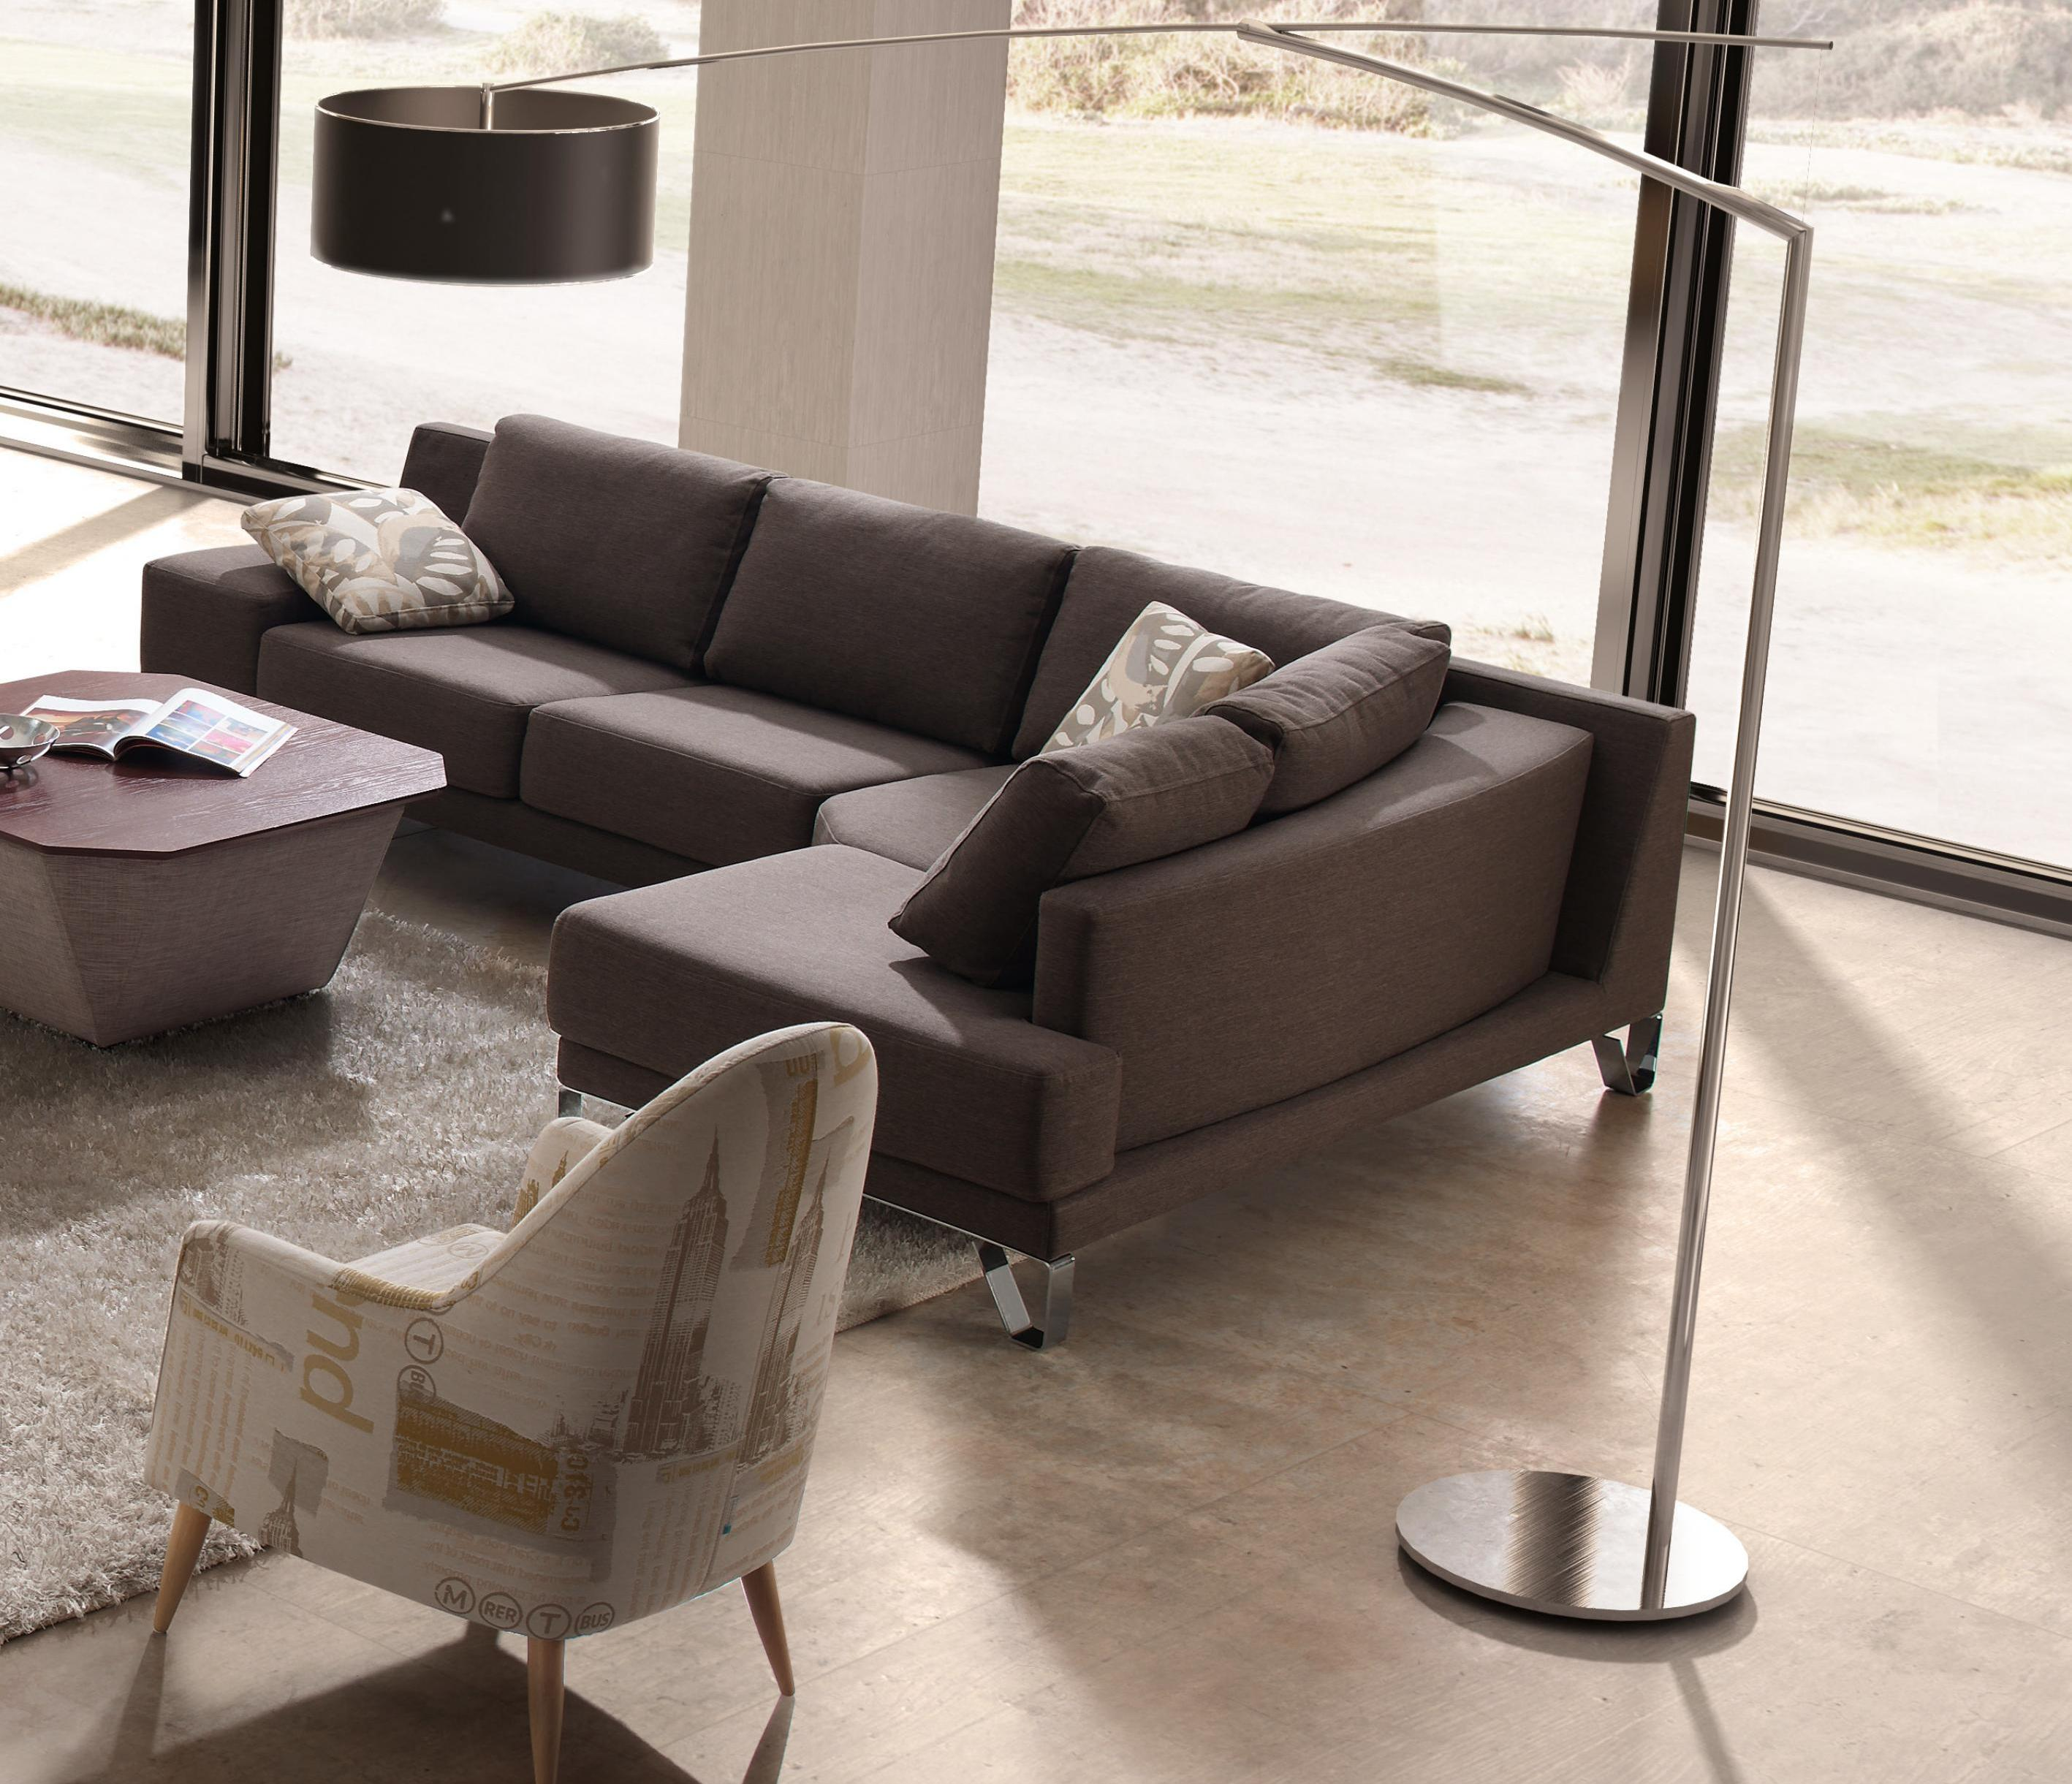 sofa fama chaiselongue Mercado del Mueble Vivarea Pinto